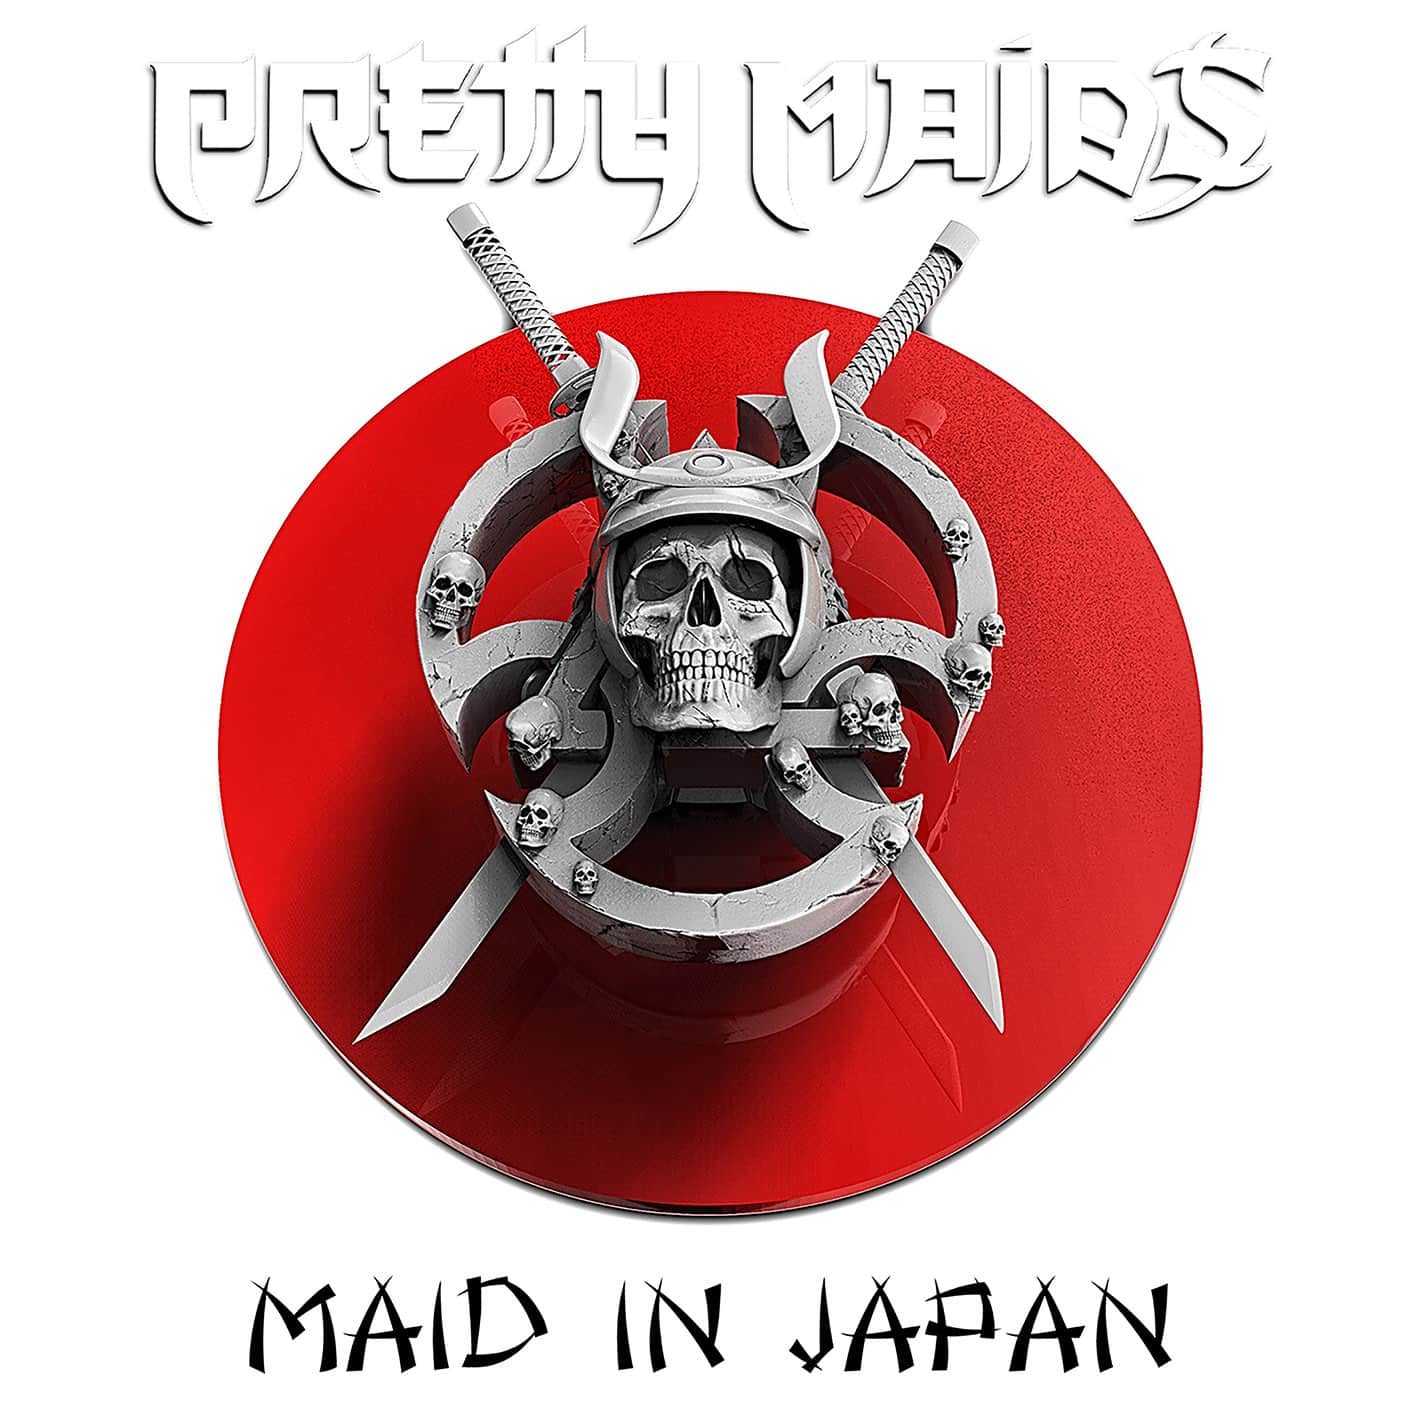 album_cover_PRETTY MAIDS Maid in Japan COVER